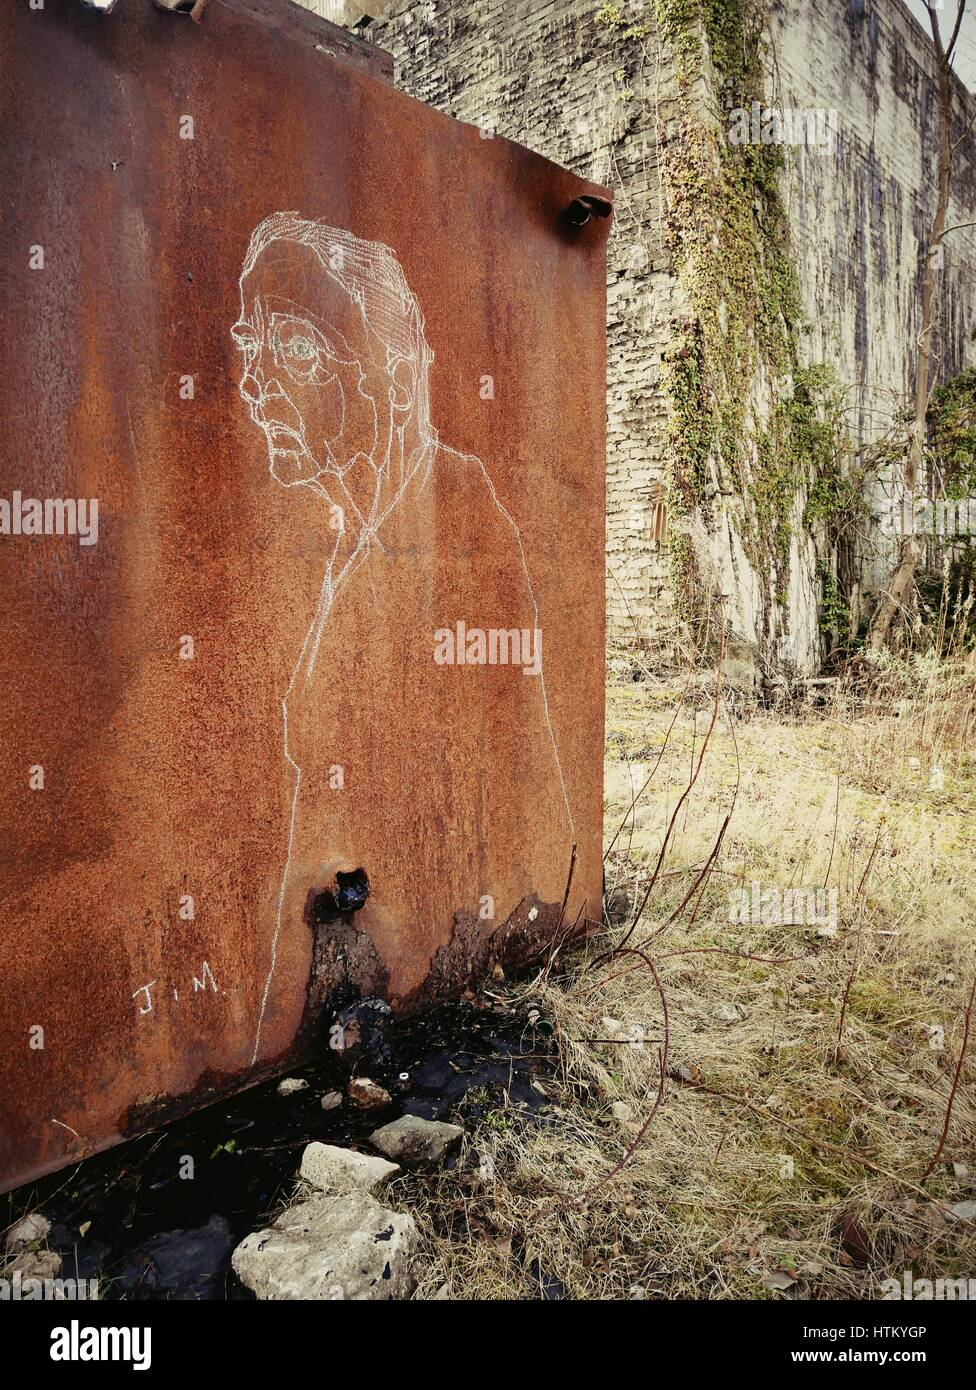 Street art - Industrial artwork - Chalk drawing of old man on rusty container in Derbyshire quarry Stock Photo